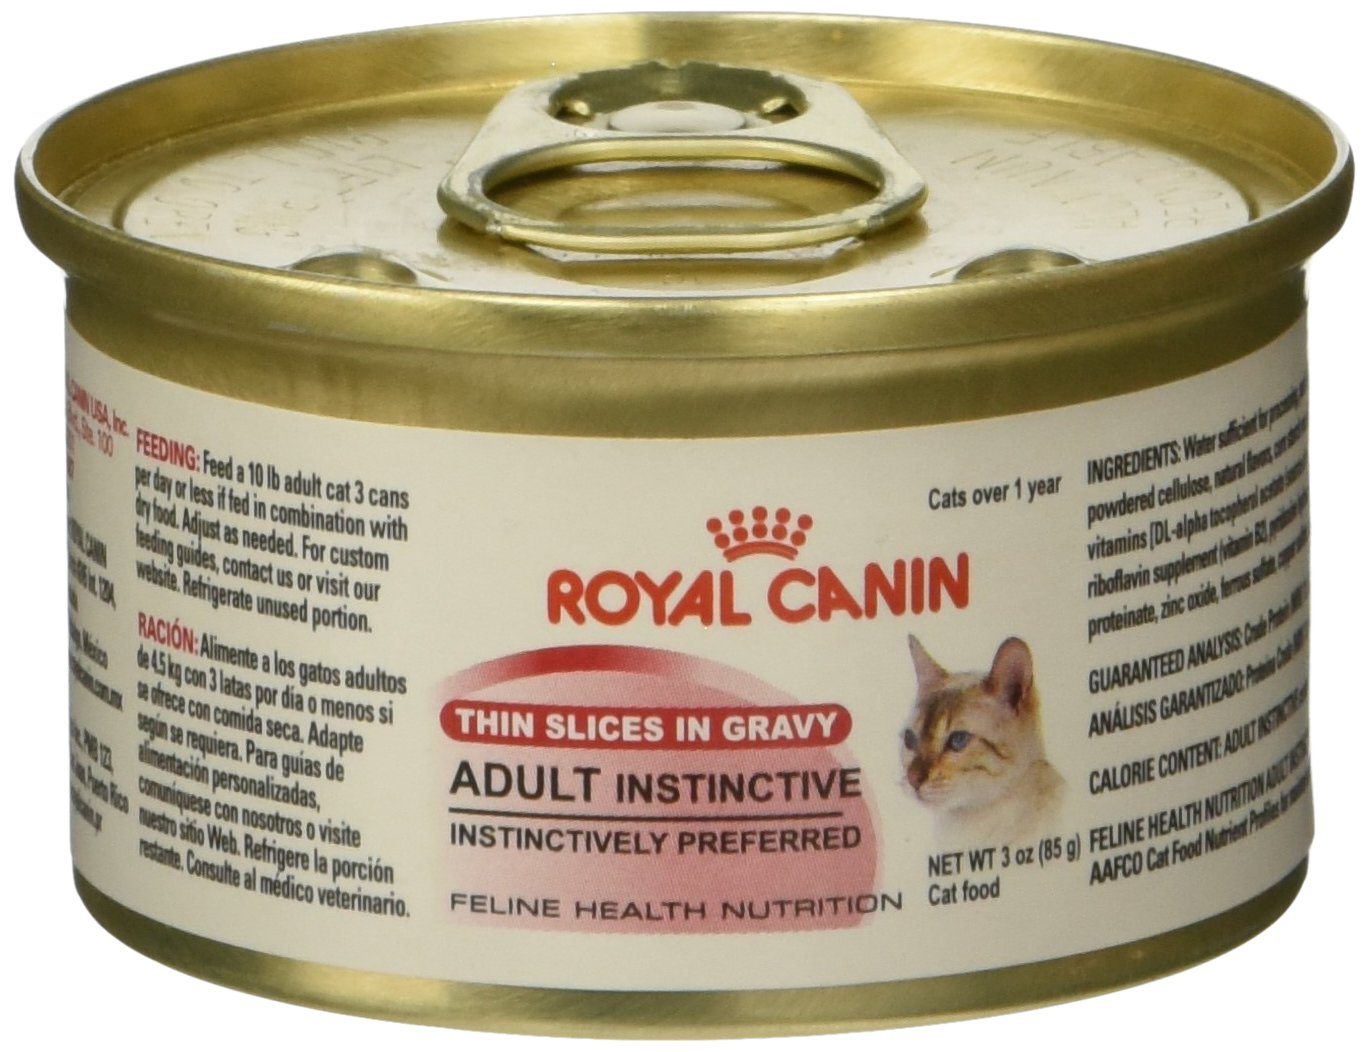 Royal Canin Feline Health Nutrition Adult Instinctive Thin Slice In Gravy c